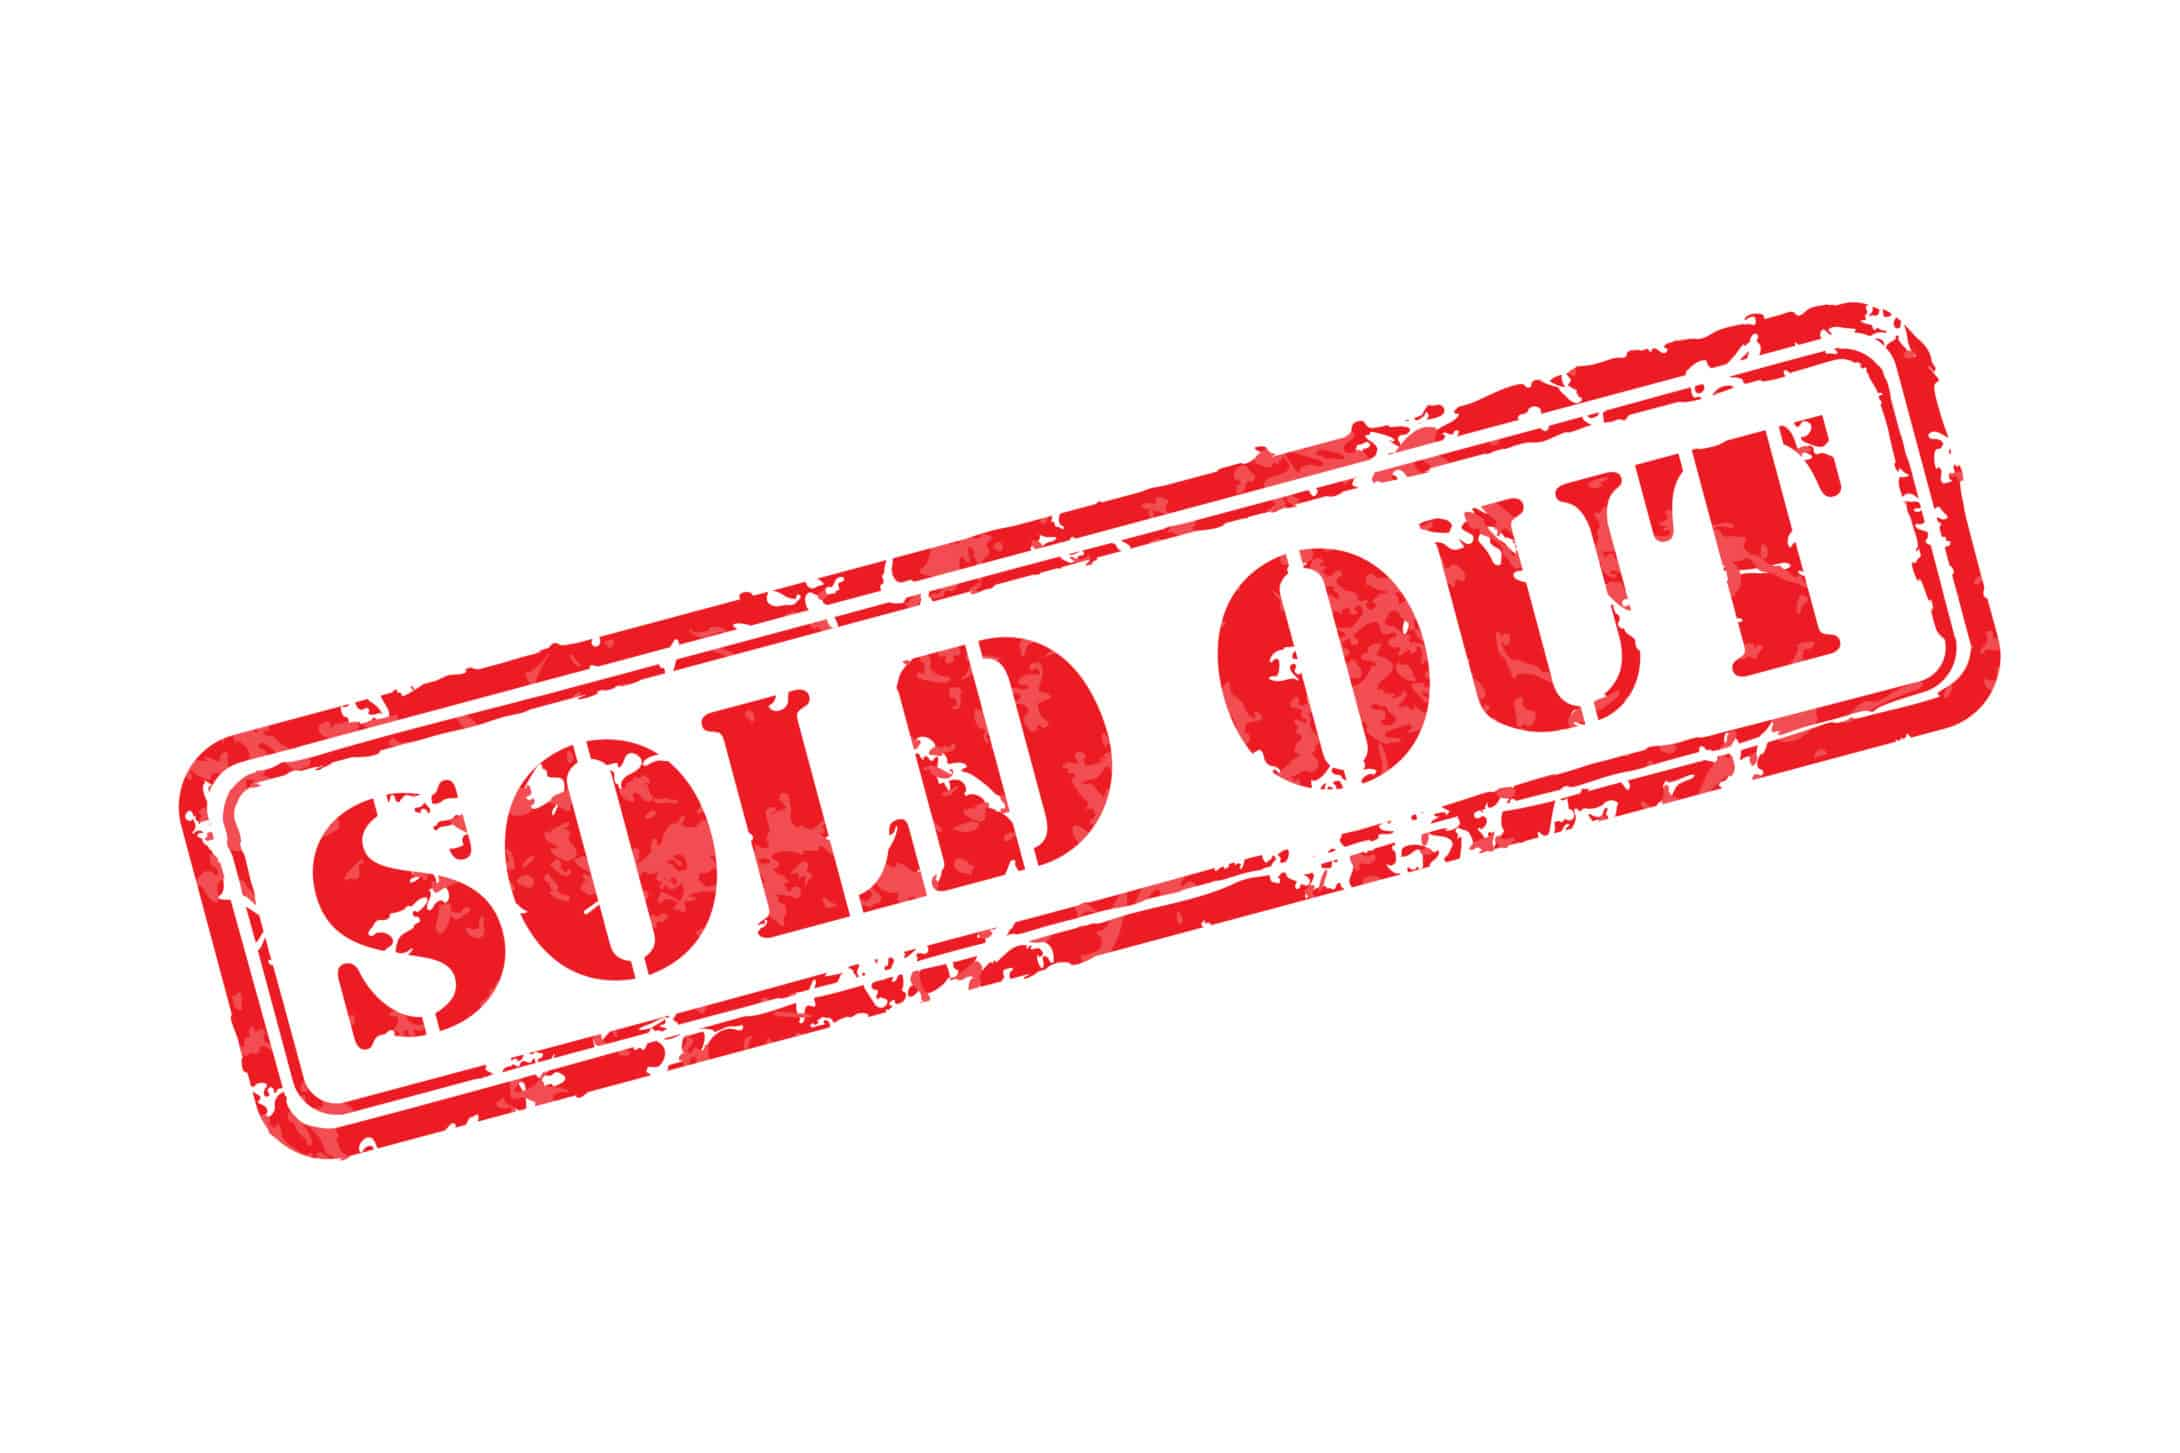 Sold out rubber stamp icon